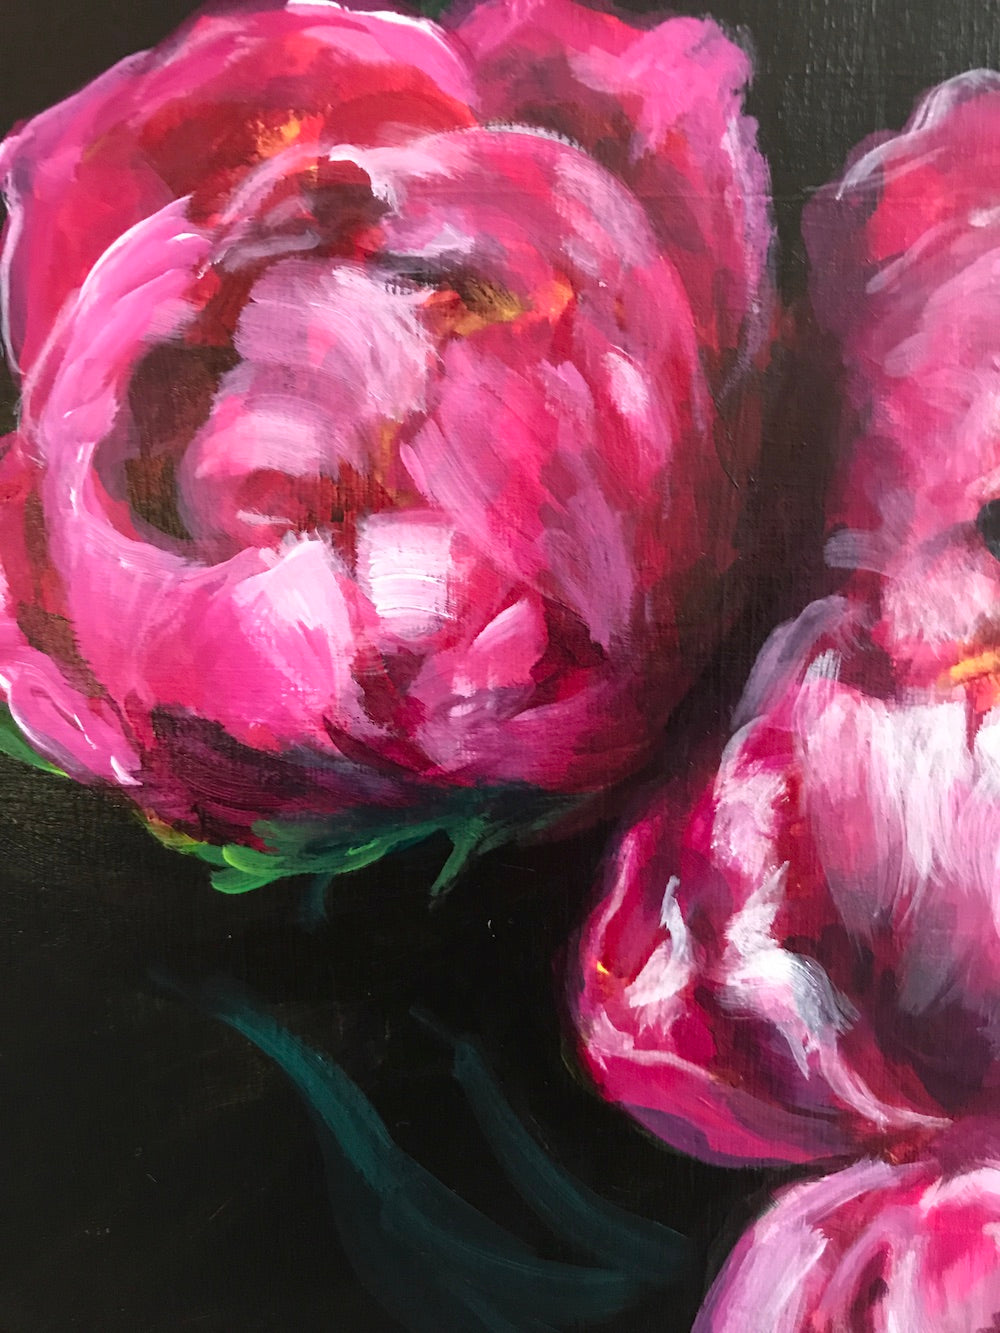 PEONIES BY MOONLIGHT | 16X20 | ORIGINAL ACRYLIC PAINTING ON WOOD | Item number 20-39P